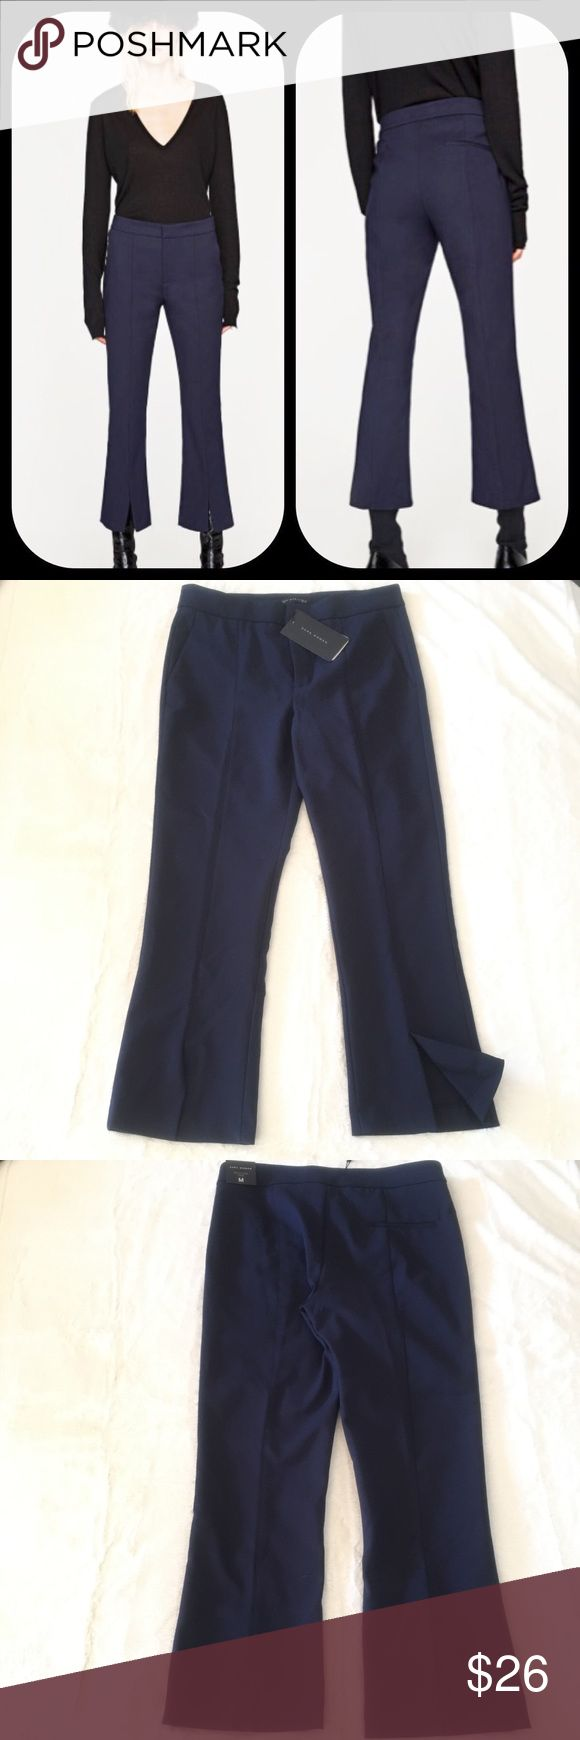 Zara Cropped Navy Trouser Cropped trouser with seam detail and a split flare.  Slits at the hem and a concealed metal hook and zip fastening in the front in a size M.  52% Cotton, 45% Polyester and 3% Elastane Zara Woman Pants Ankle & Cropped